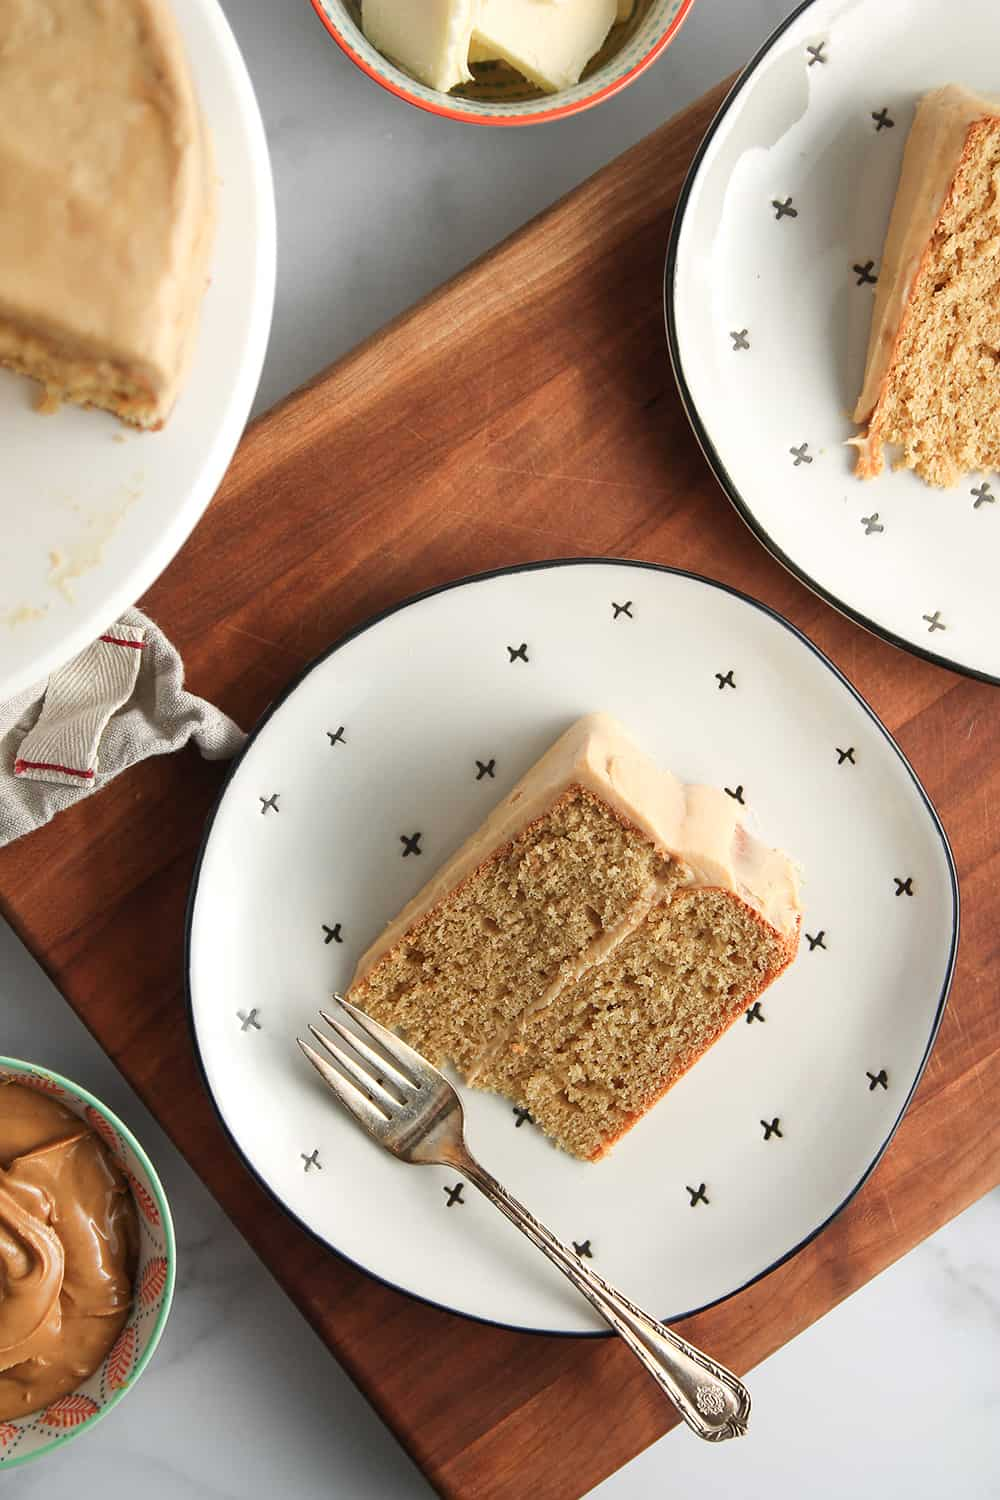 Peanut Butter Cake is a perfect birthday cake for any peanut butter lover.